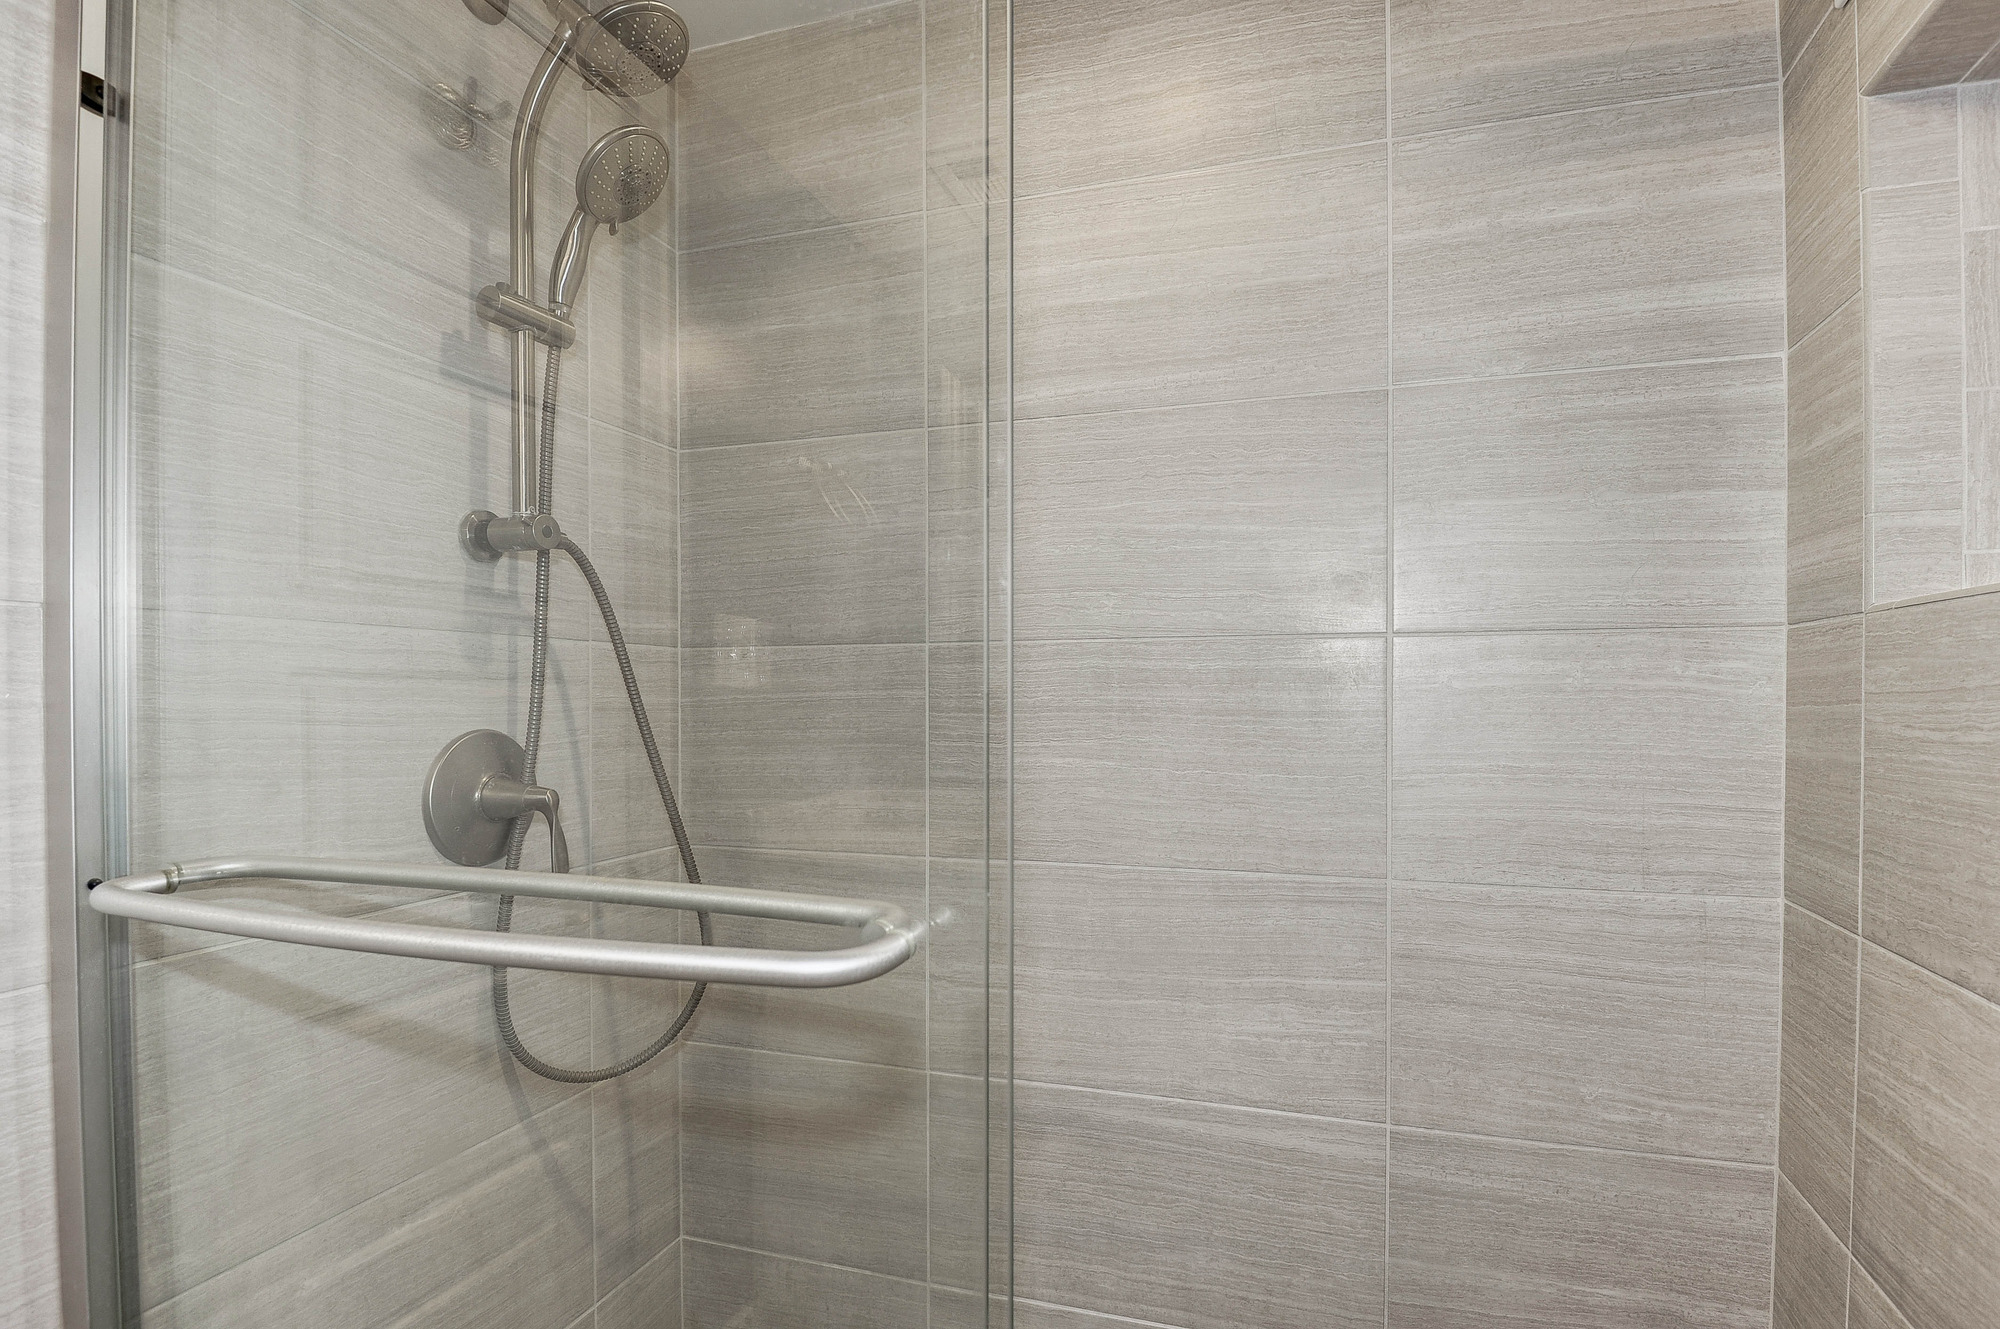 Converted Tub into SHOWER